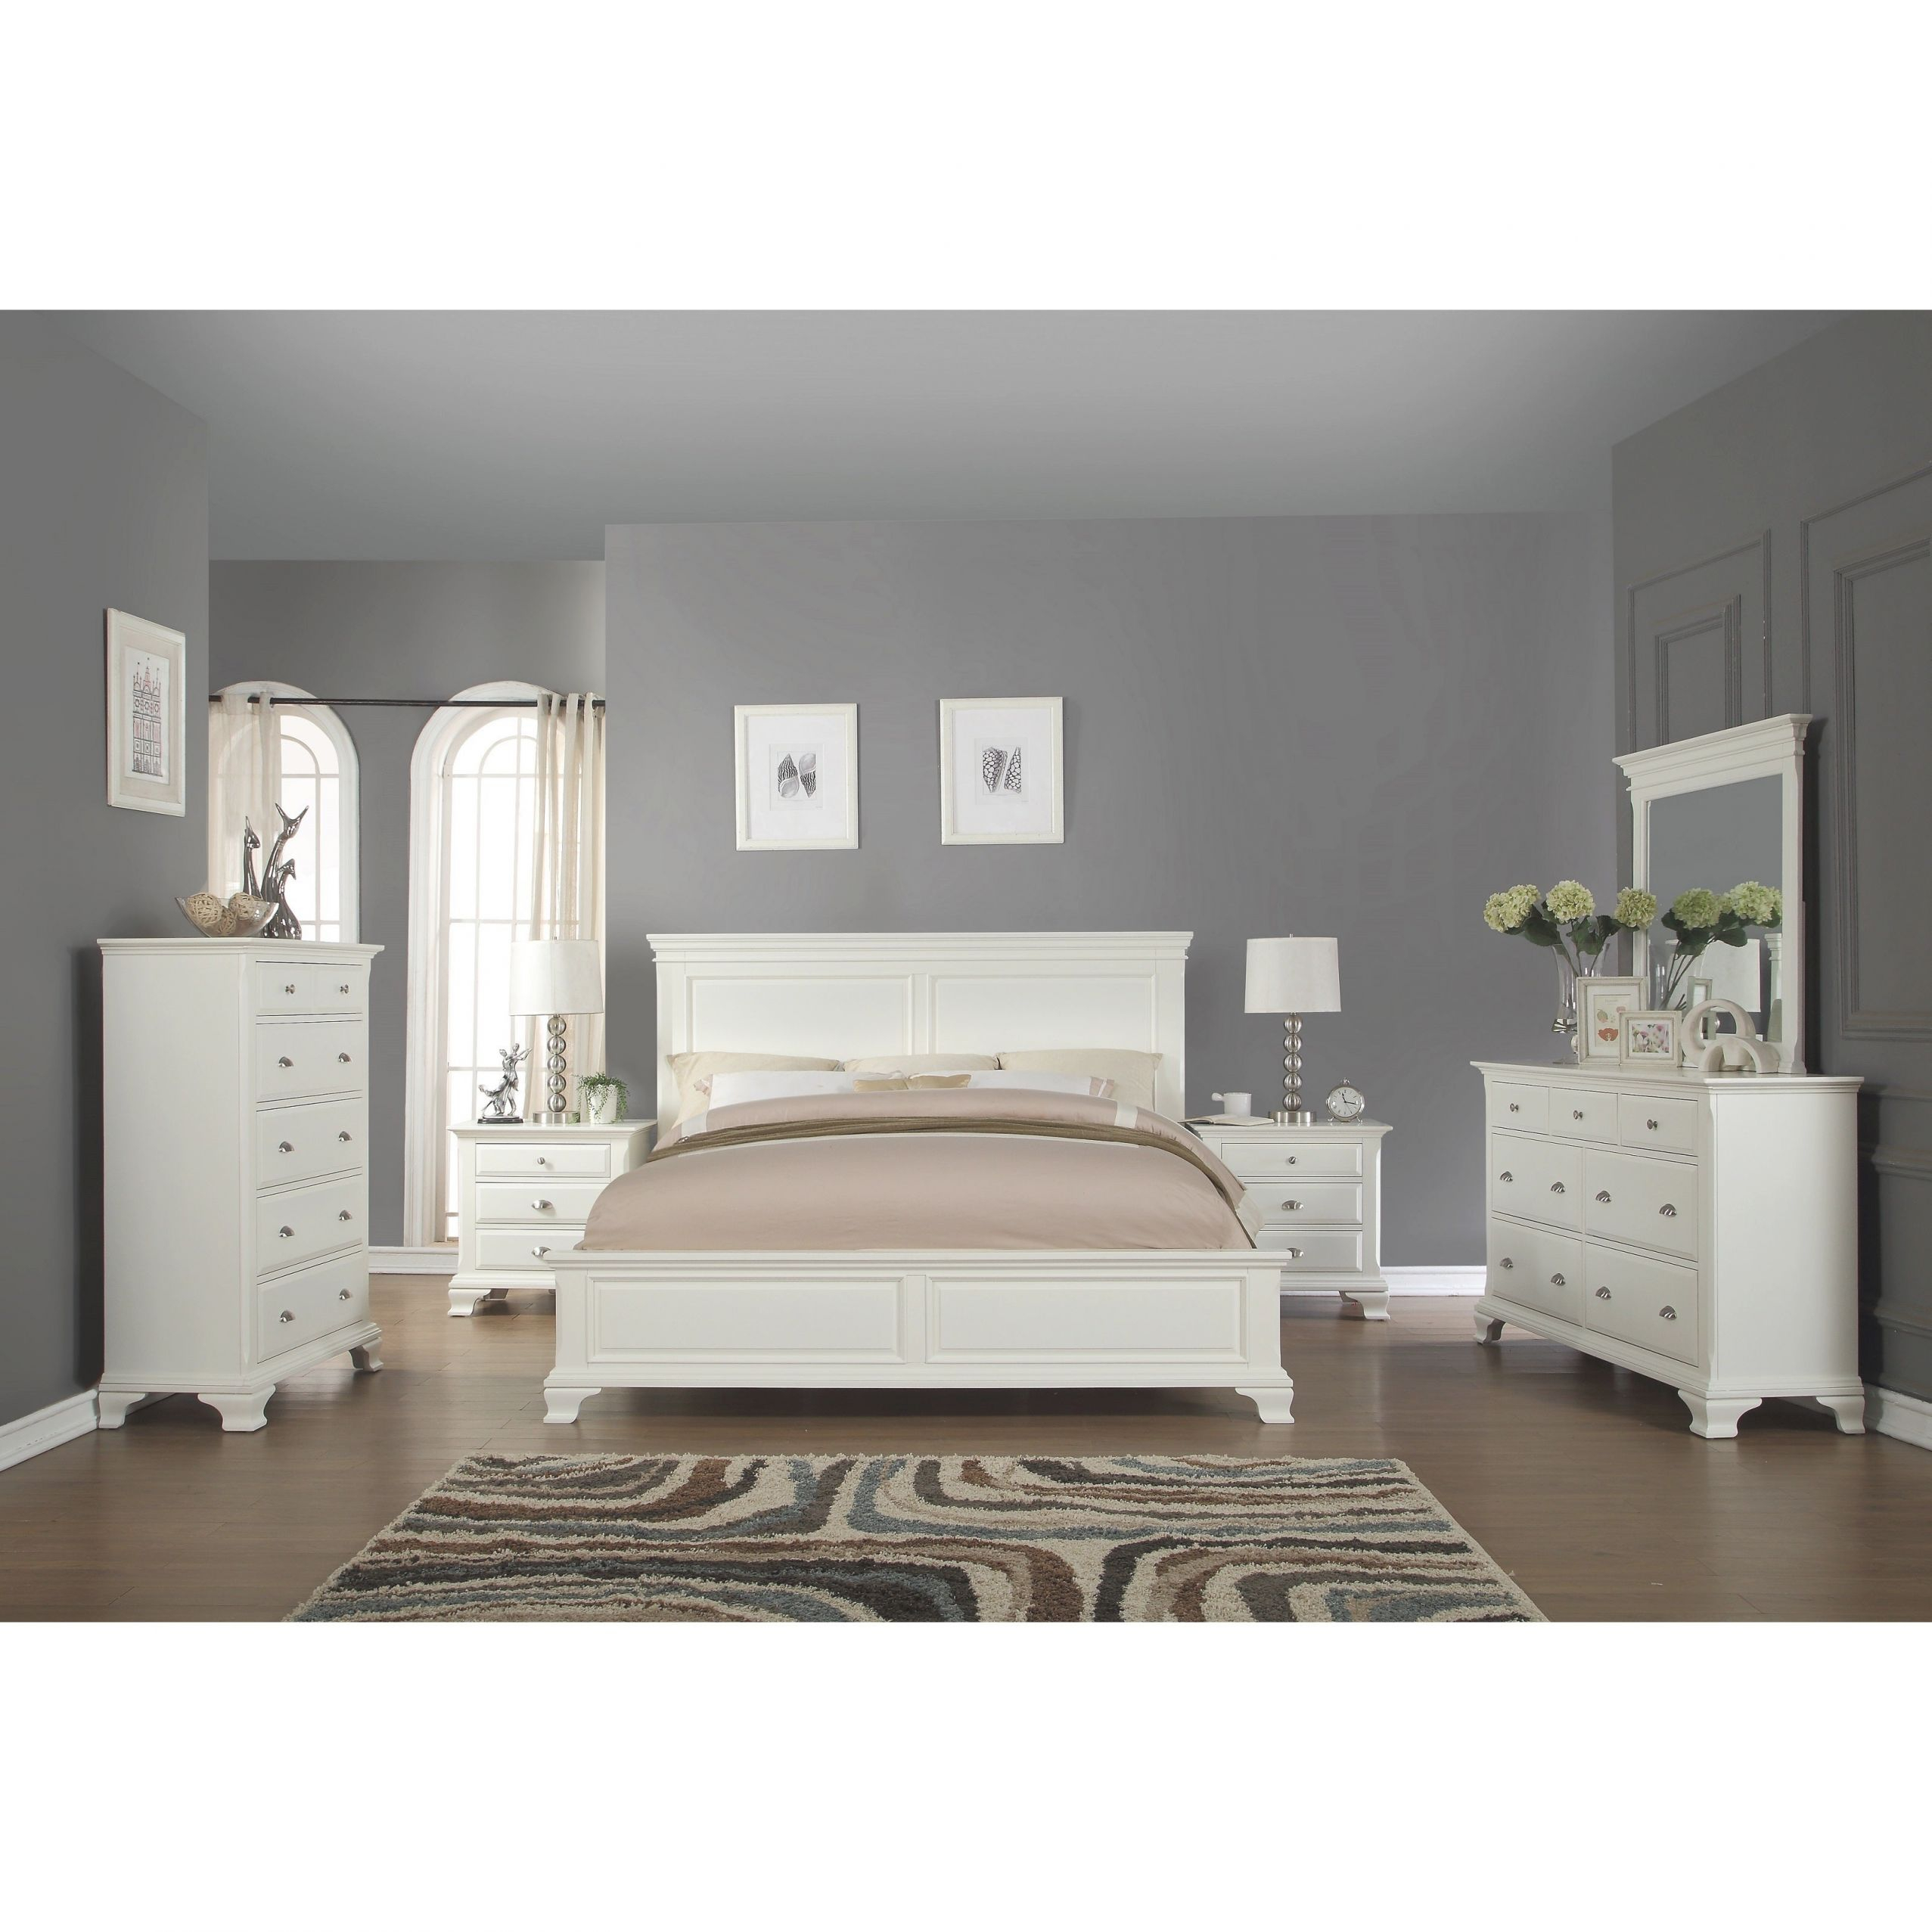 Laveno 012 White Wood Bedroom Furniture Set, Includes King Bed, Dresser, Mirror, 2 Night Stands, And Chest intended for Cheap White Bedroom Furniture Sets